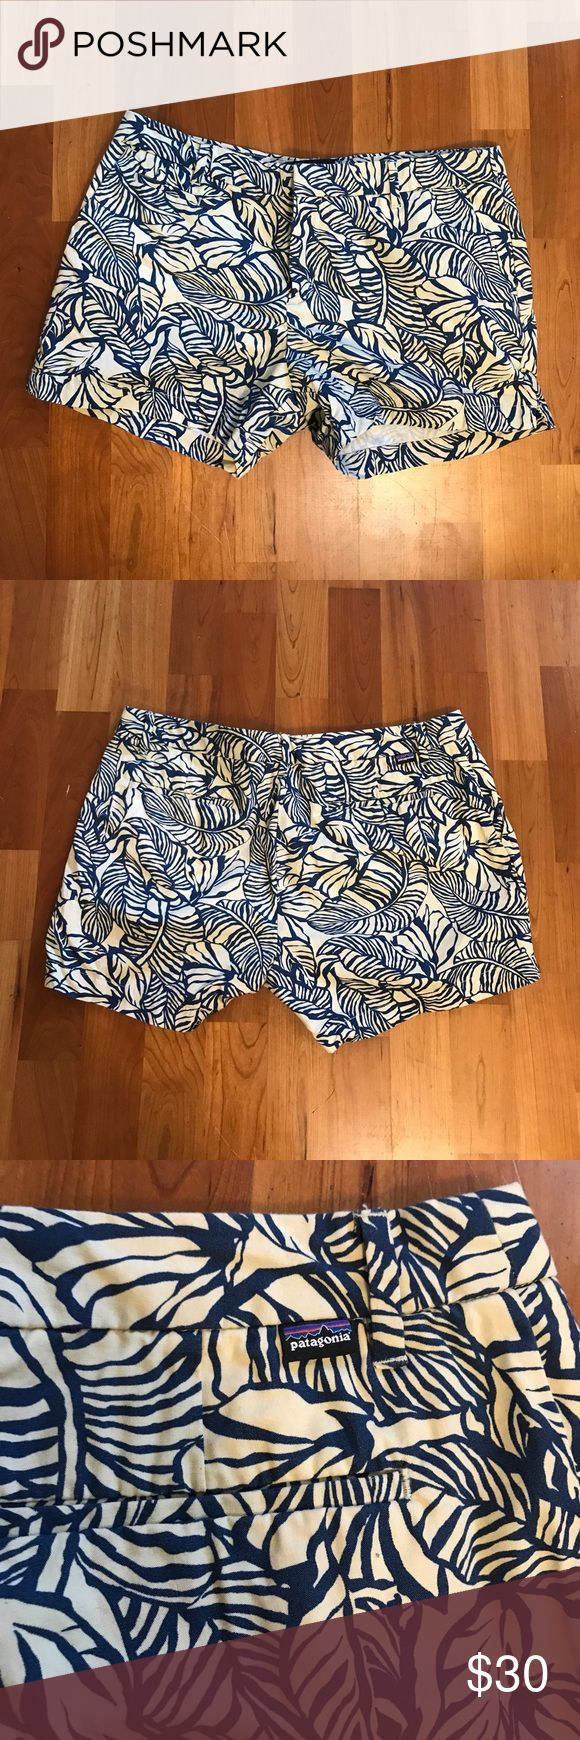 {Patagonia} All-Wear Stretch Shorts Women's patagonia all-wear stretch shorts in size 14. Colors are cream and blue. EUC. Patagonia Shorts